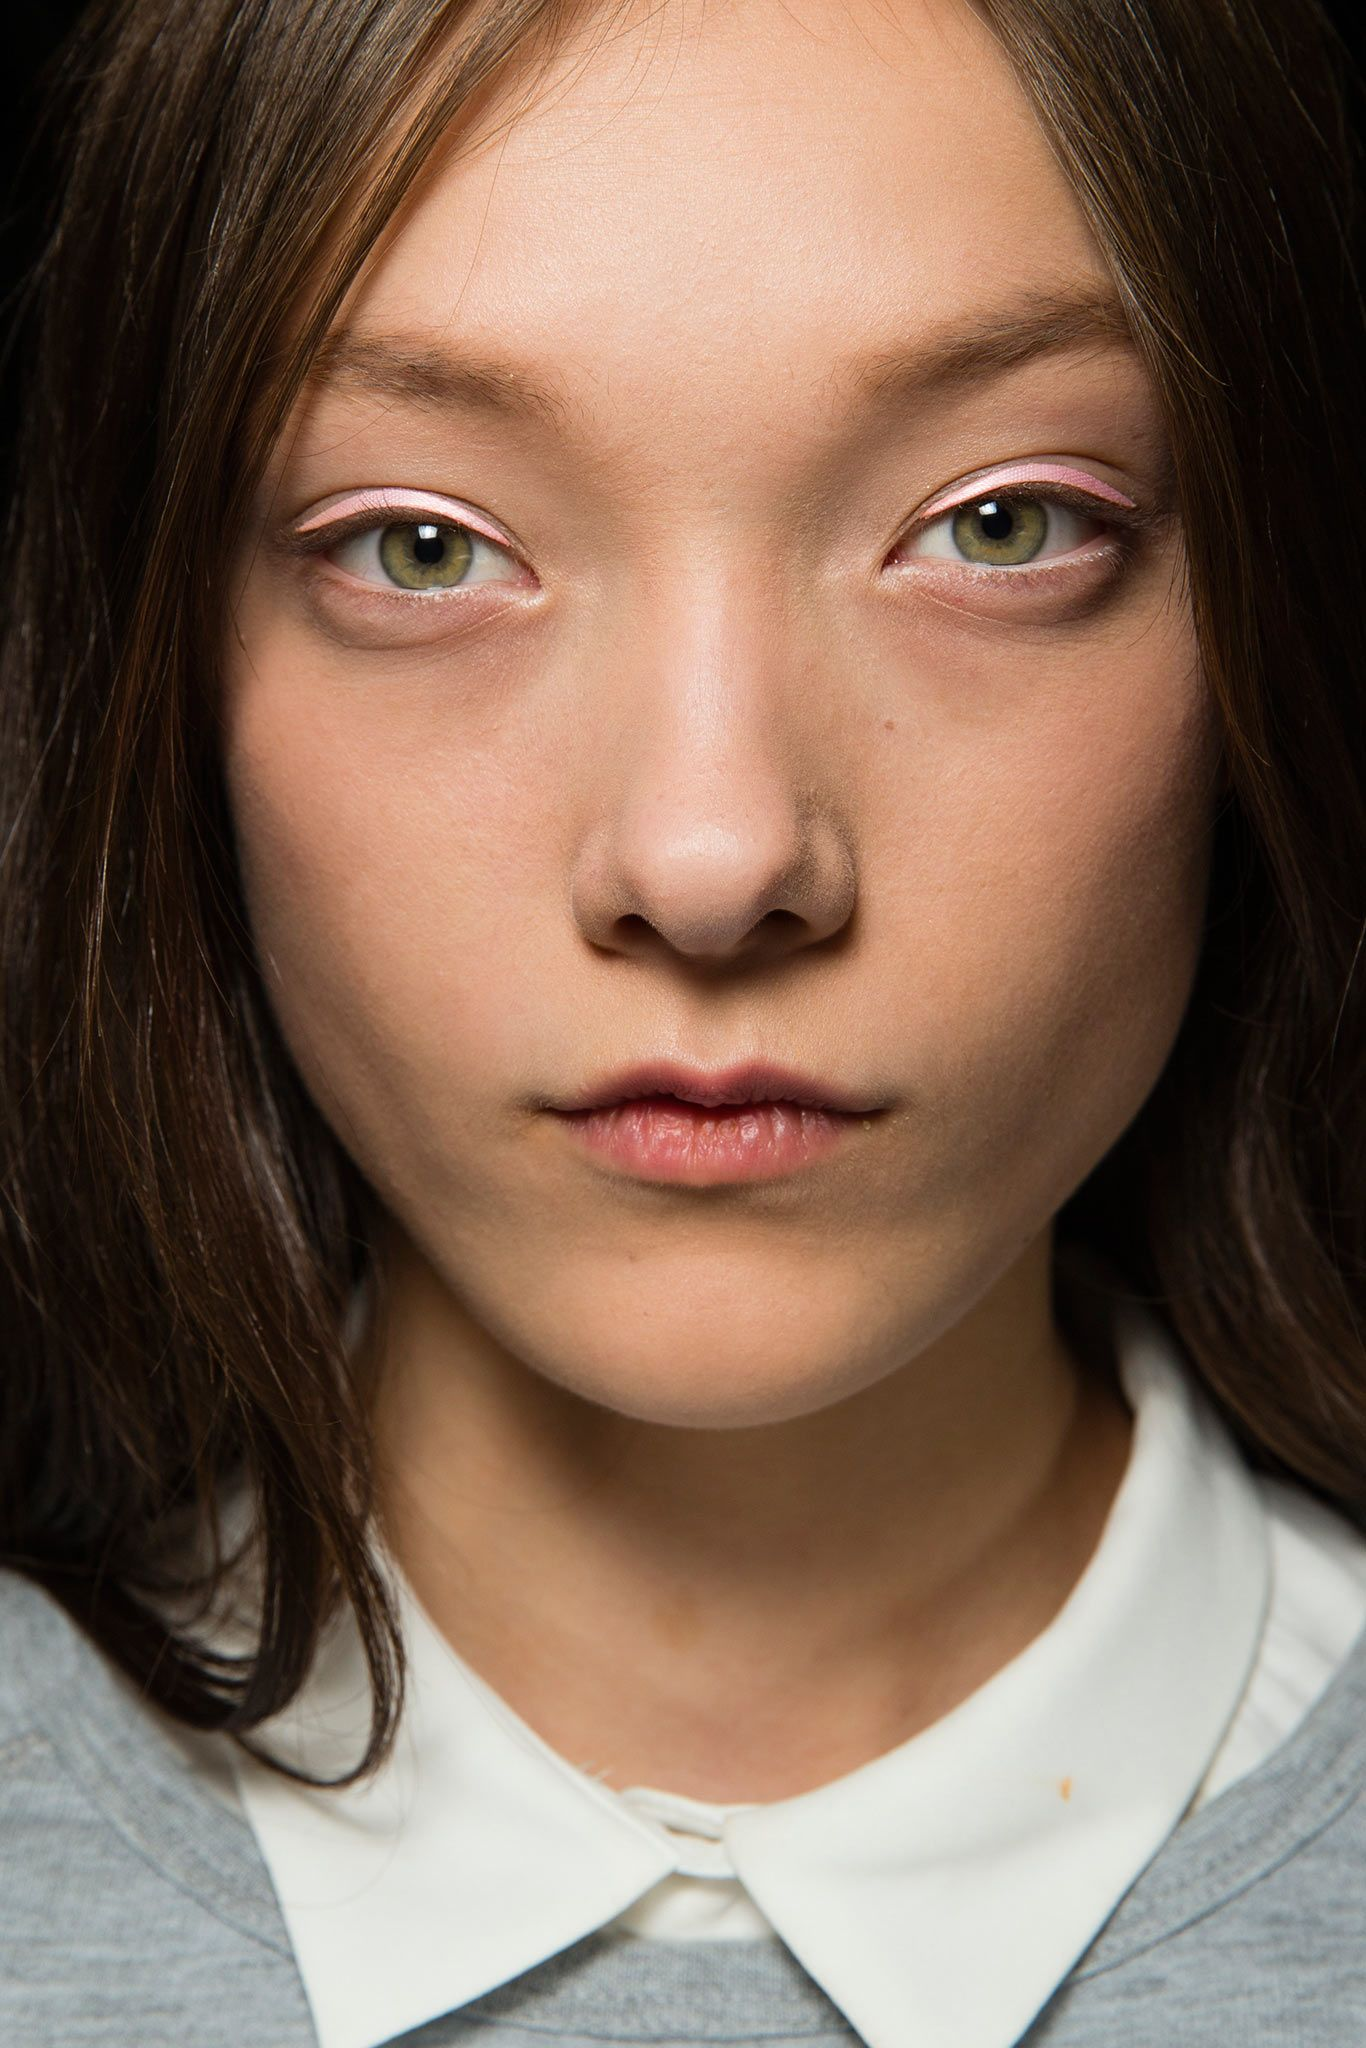 Christian Dior Spring 2015 Ready-to-Wear - Beauty - Gallery - Look 84 - Style.com